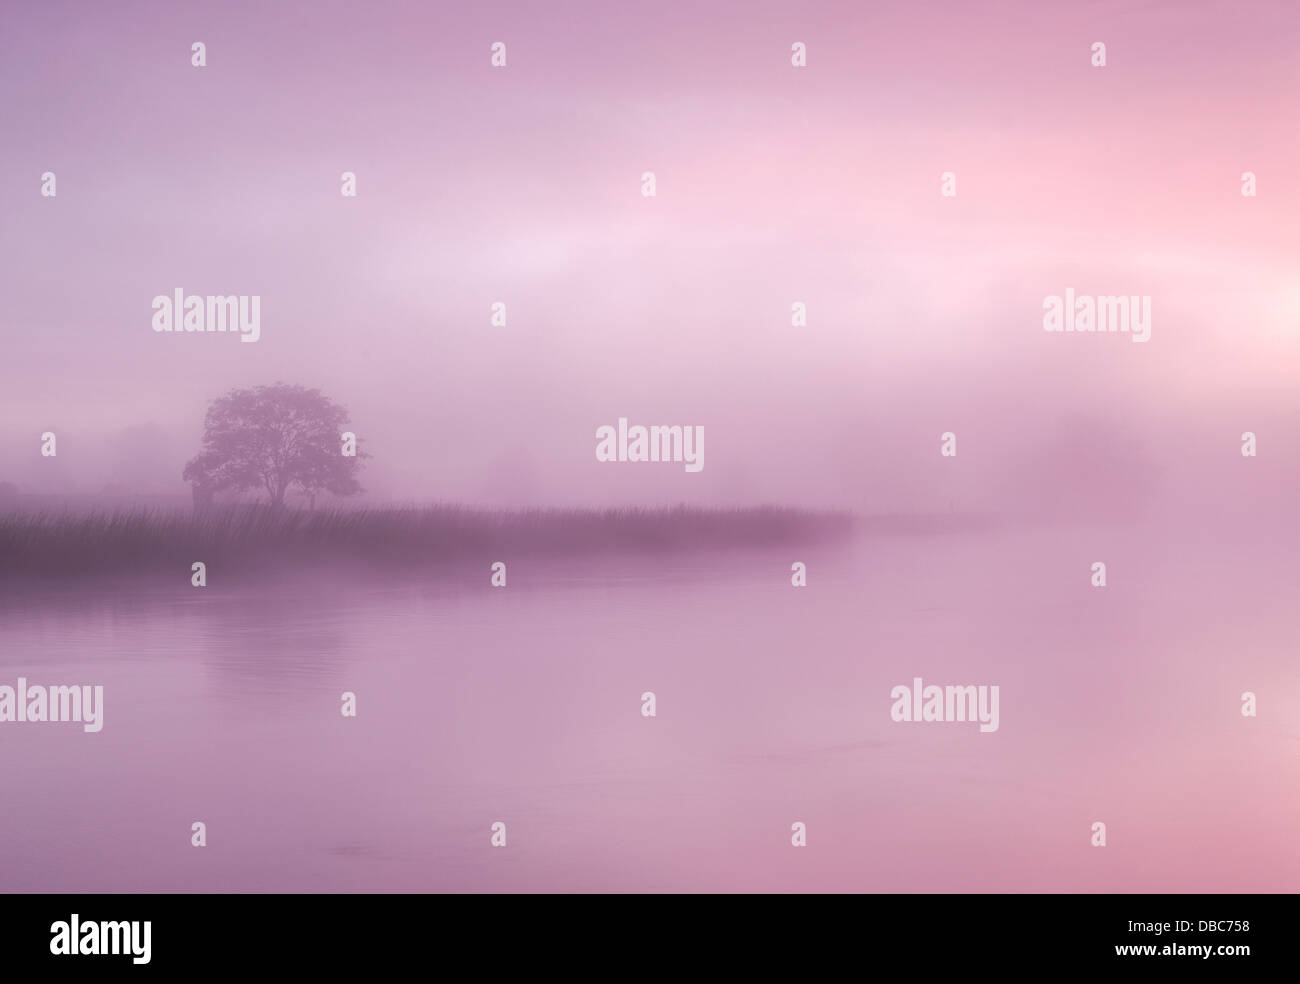 Irische Landschaften, nebliger Morgen an den Ufern des Flusses Boyne County Meath Ireland Stockbild